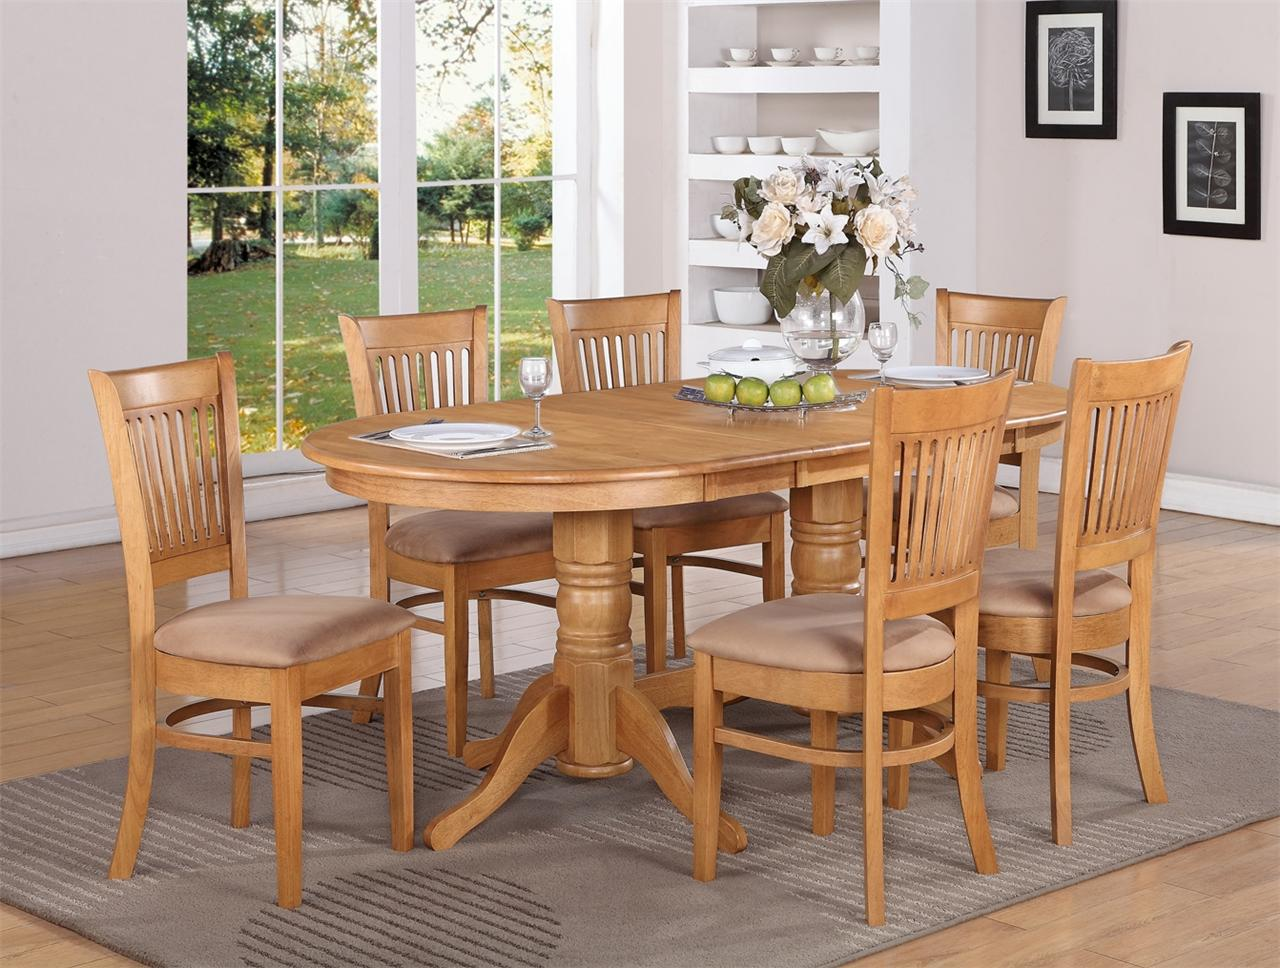 7 pc vancouver oval dinette kitchen dining table w 6 Kitchen table and chairs